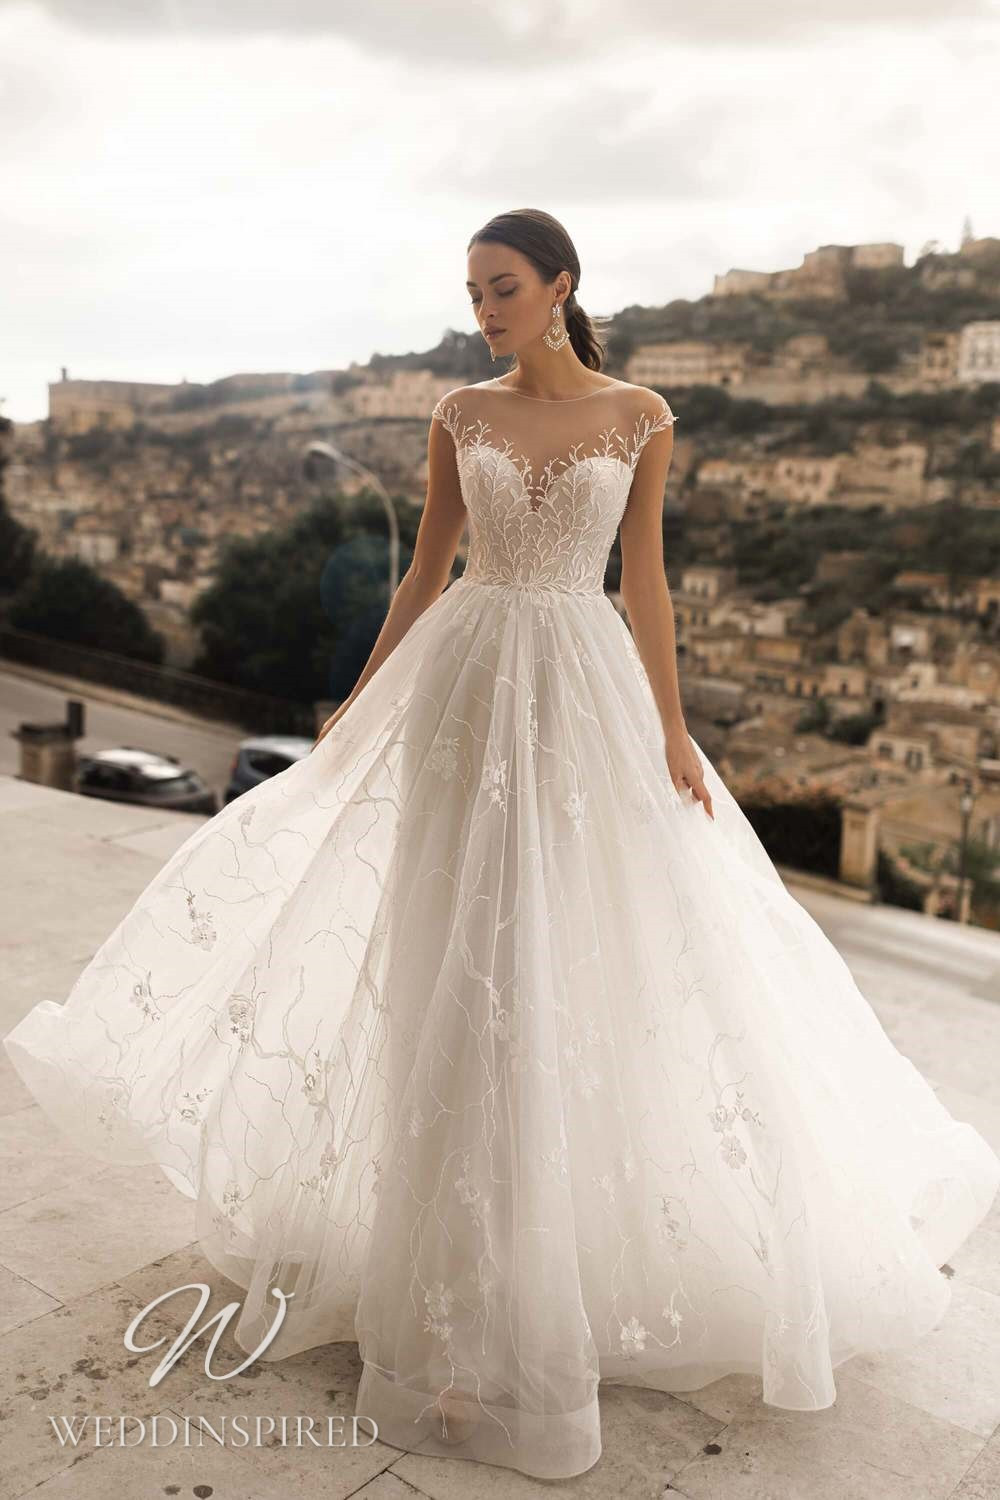 A Lussano 2021 lace and tulle A-line wedding dress with cap sleeves